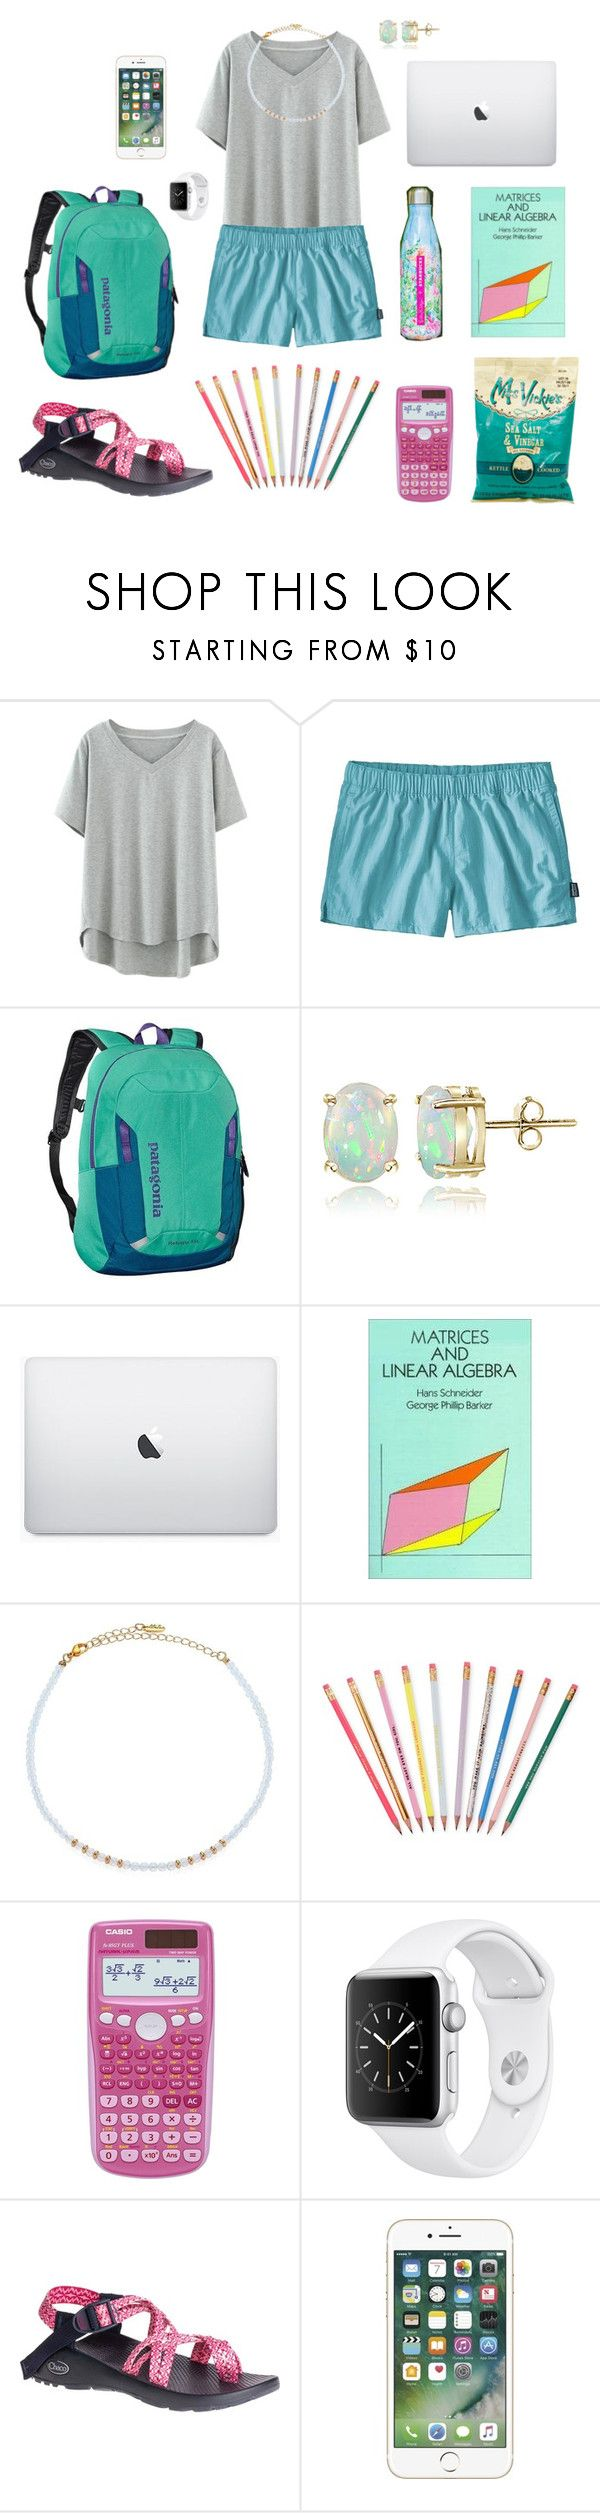 """""""Library Sesh"""" by walzfashion ❤ liked on Polyvore featuring Patagonia, Patagonia Kids, Glitzy Rocks, Barker, Ettika, ban.do, Apple and Chaco"""